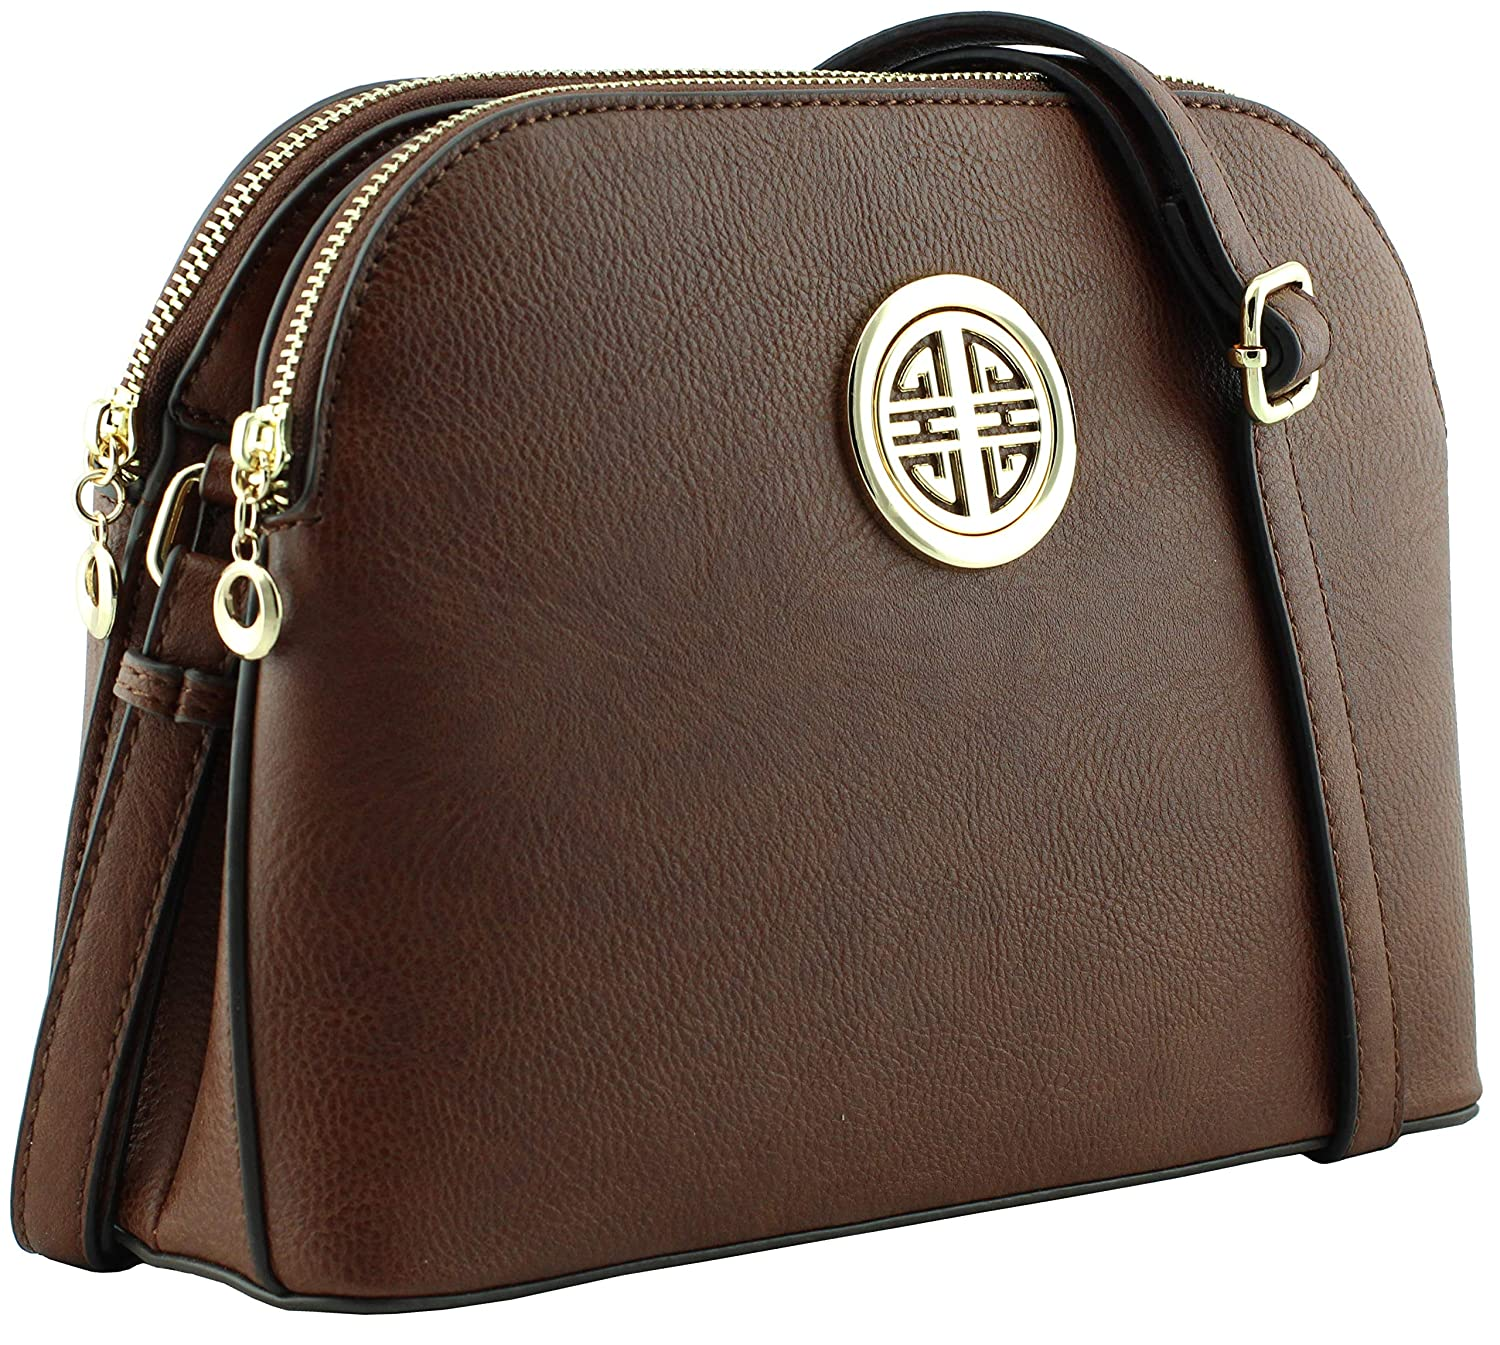 Coffee Multi pockets functional dome shape cross body bag with gold tone emblem